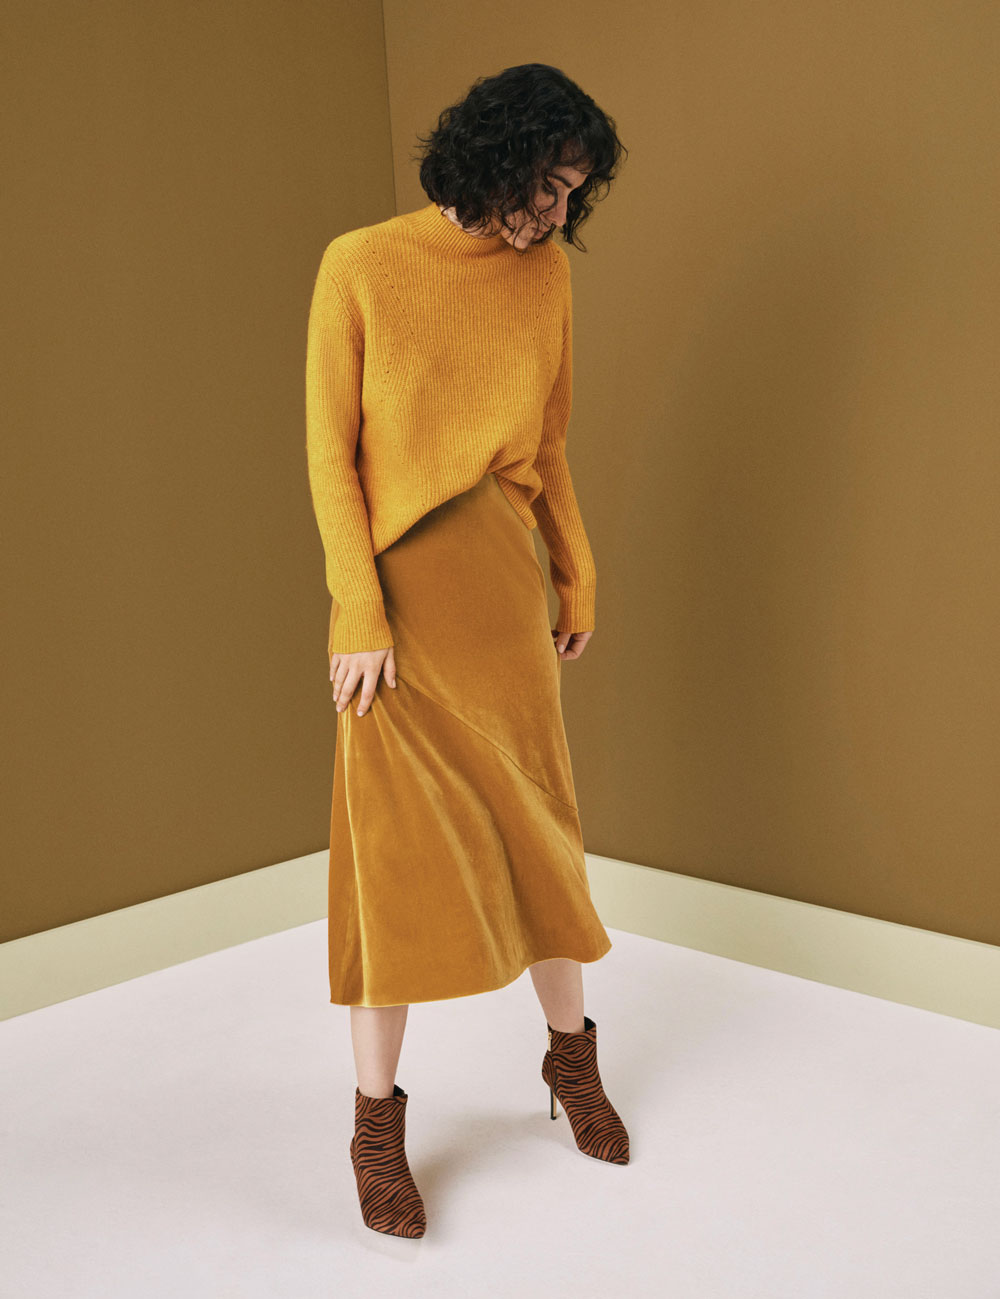 Oasis Ochre Raakel Ribbed Jumper, £40; Mid Yellow Bias Cut Skirt, £32; Tiger Boots, £45/AED203.12